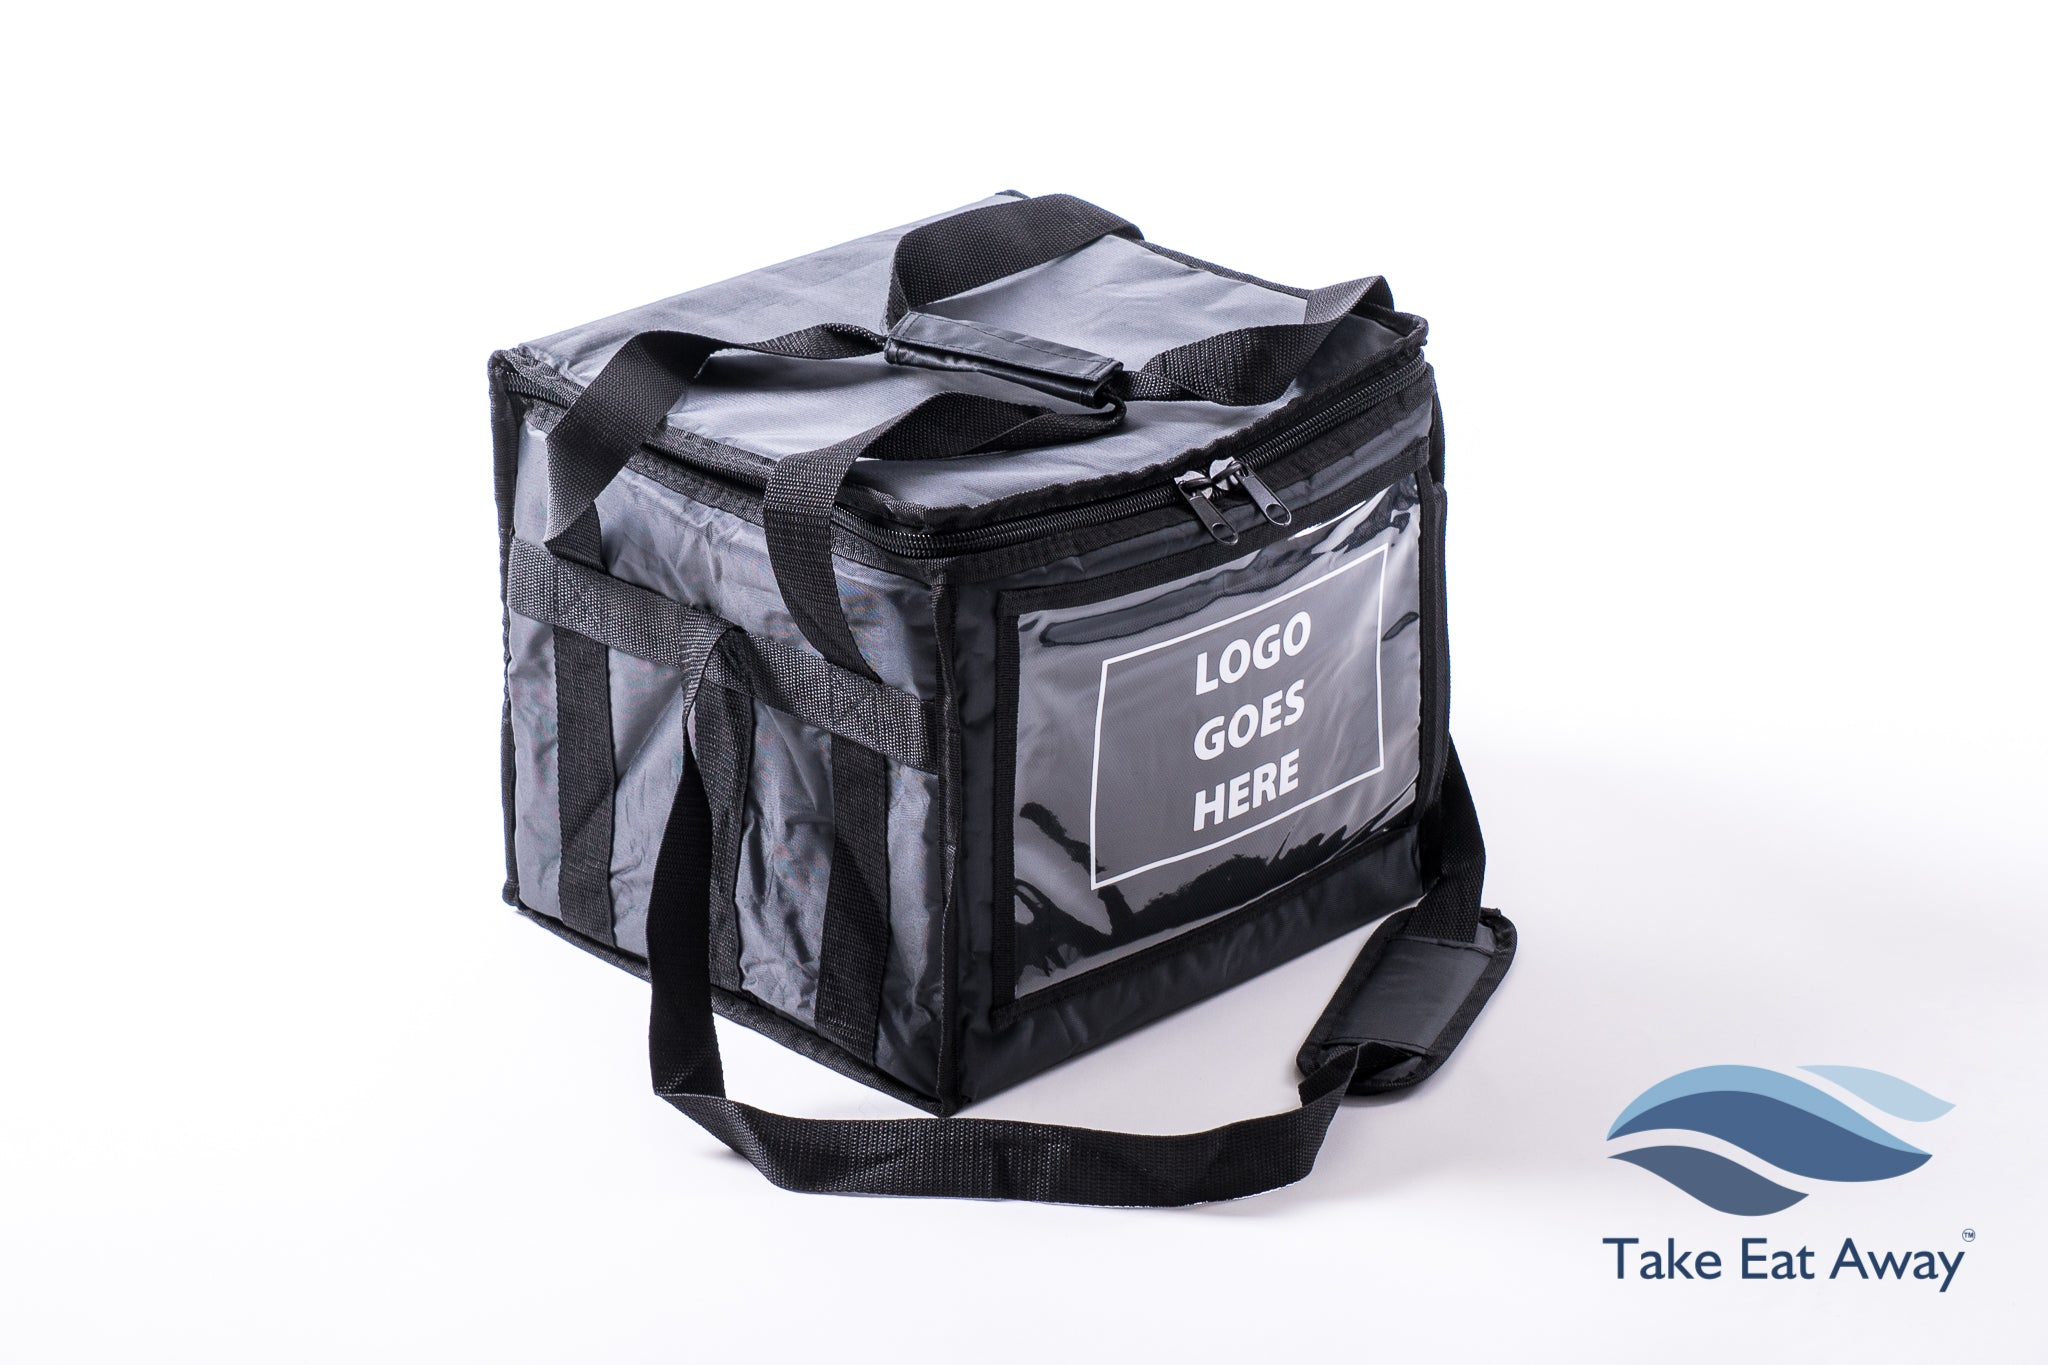 *T161D Food & Drink Delivery Bag to Customise add Branding Deliveries Bags with 6 Cup Holder